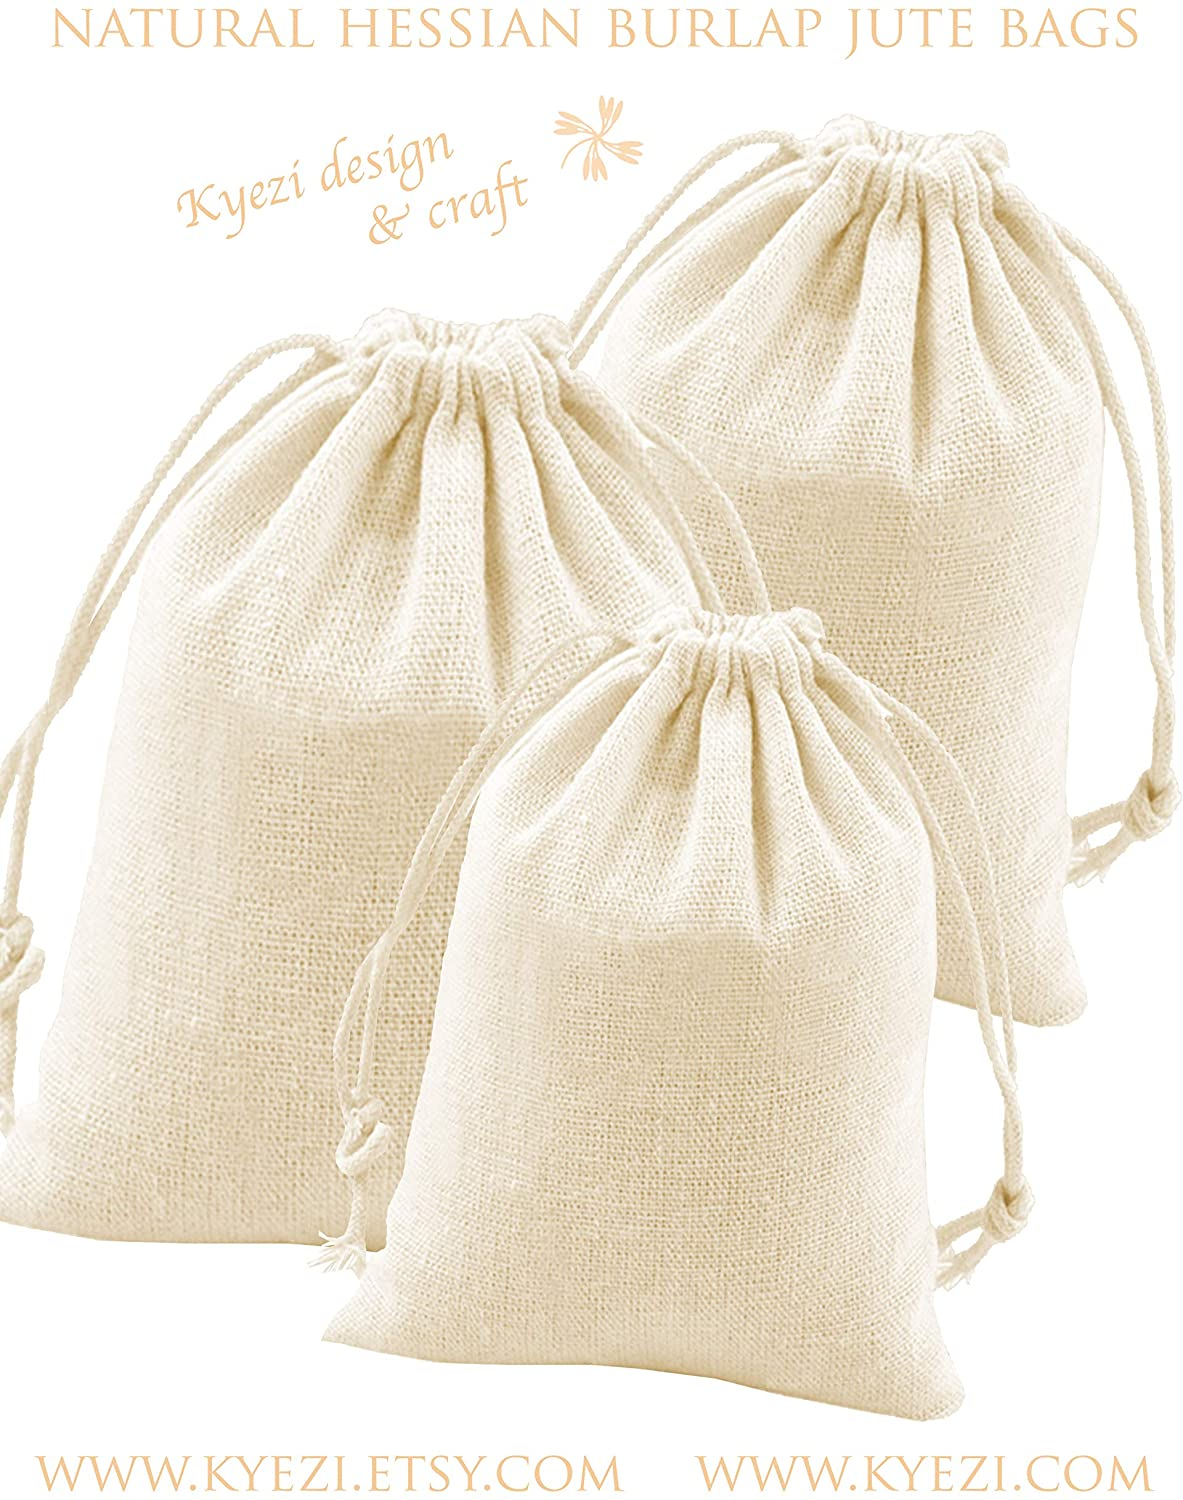 Hessian Burlap Jute Linen Gift Bags with Drawstring for Wedding Part Favor, Candy Bags, Presents, Snacks & Jewelry, Christmas, Arts & Crafts Projects (Cream, 4x6 25pc)